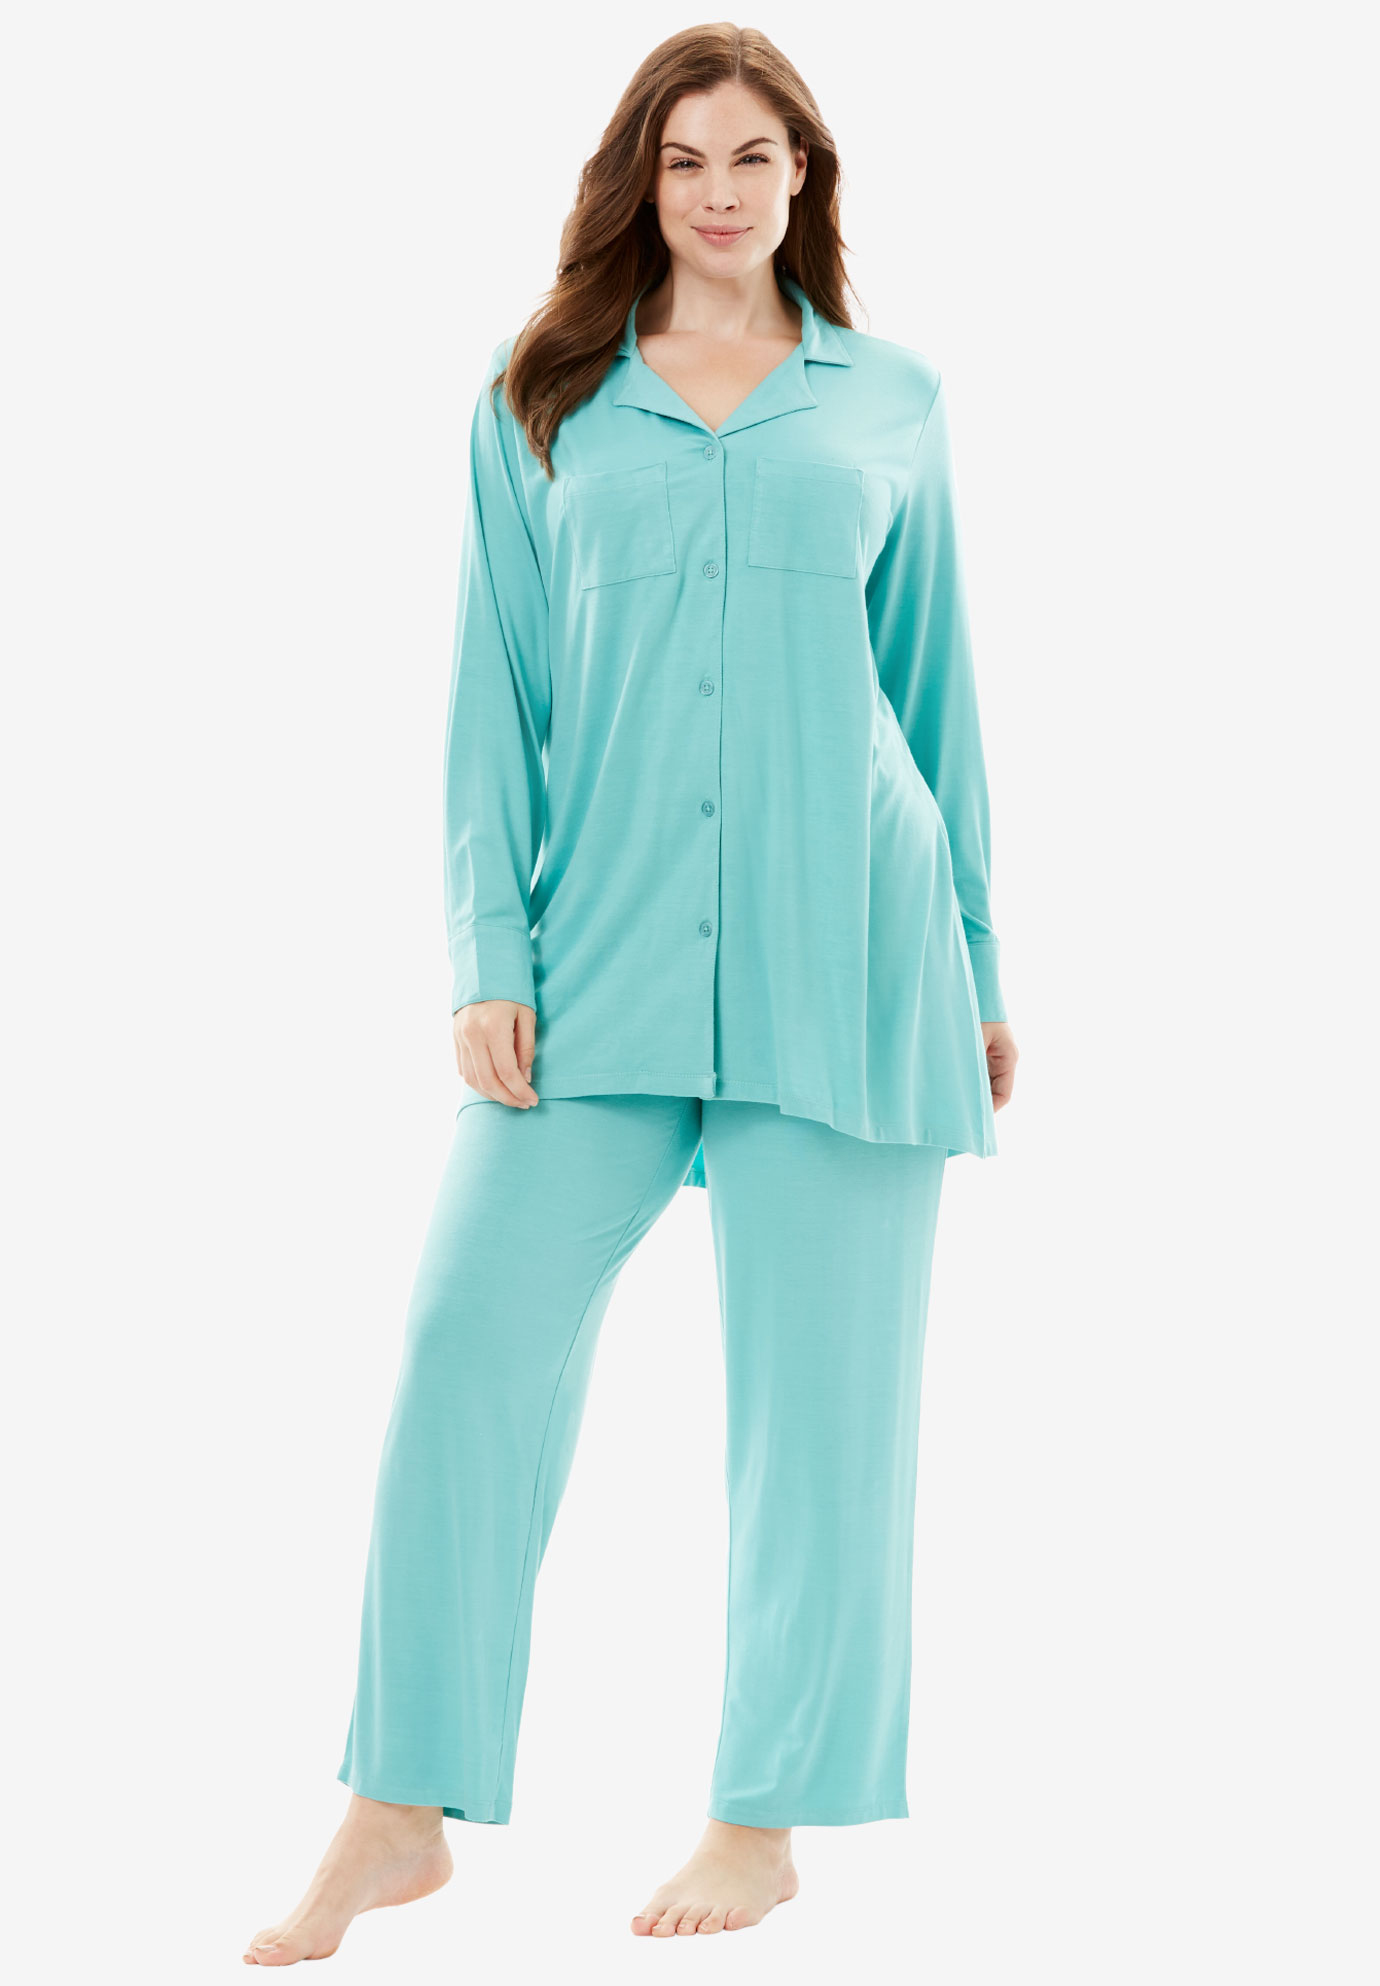 Downtime Sleepwear Solid PJ Set by Dreams & Co.®, AZURE, hi-res